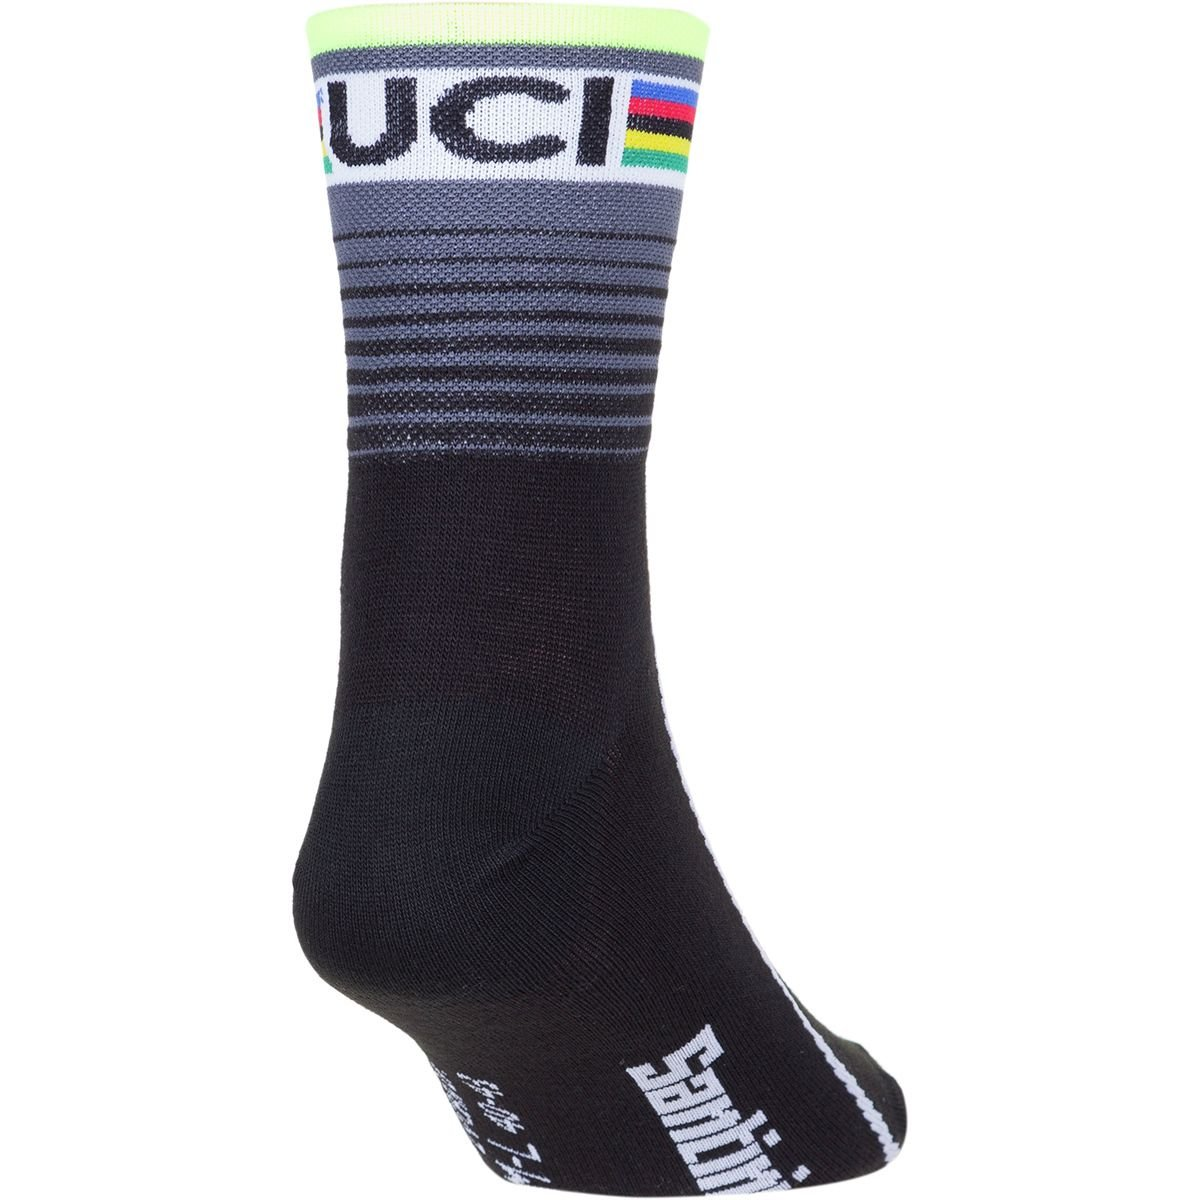 Calcetines Santini UCI Rainbow Line World Champion 2016 2016: Amazon.es: Deportes y aire libre